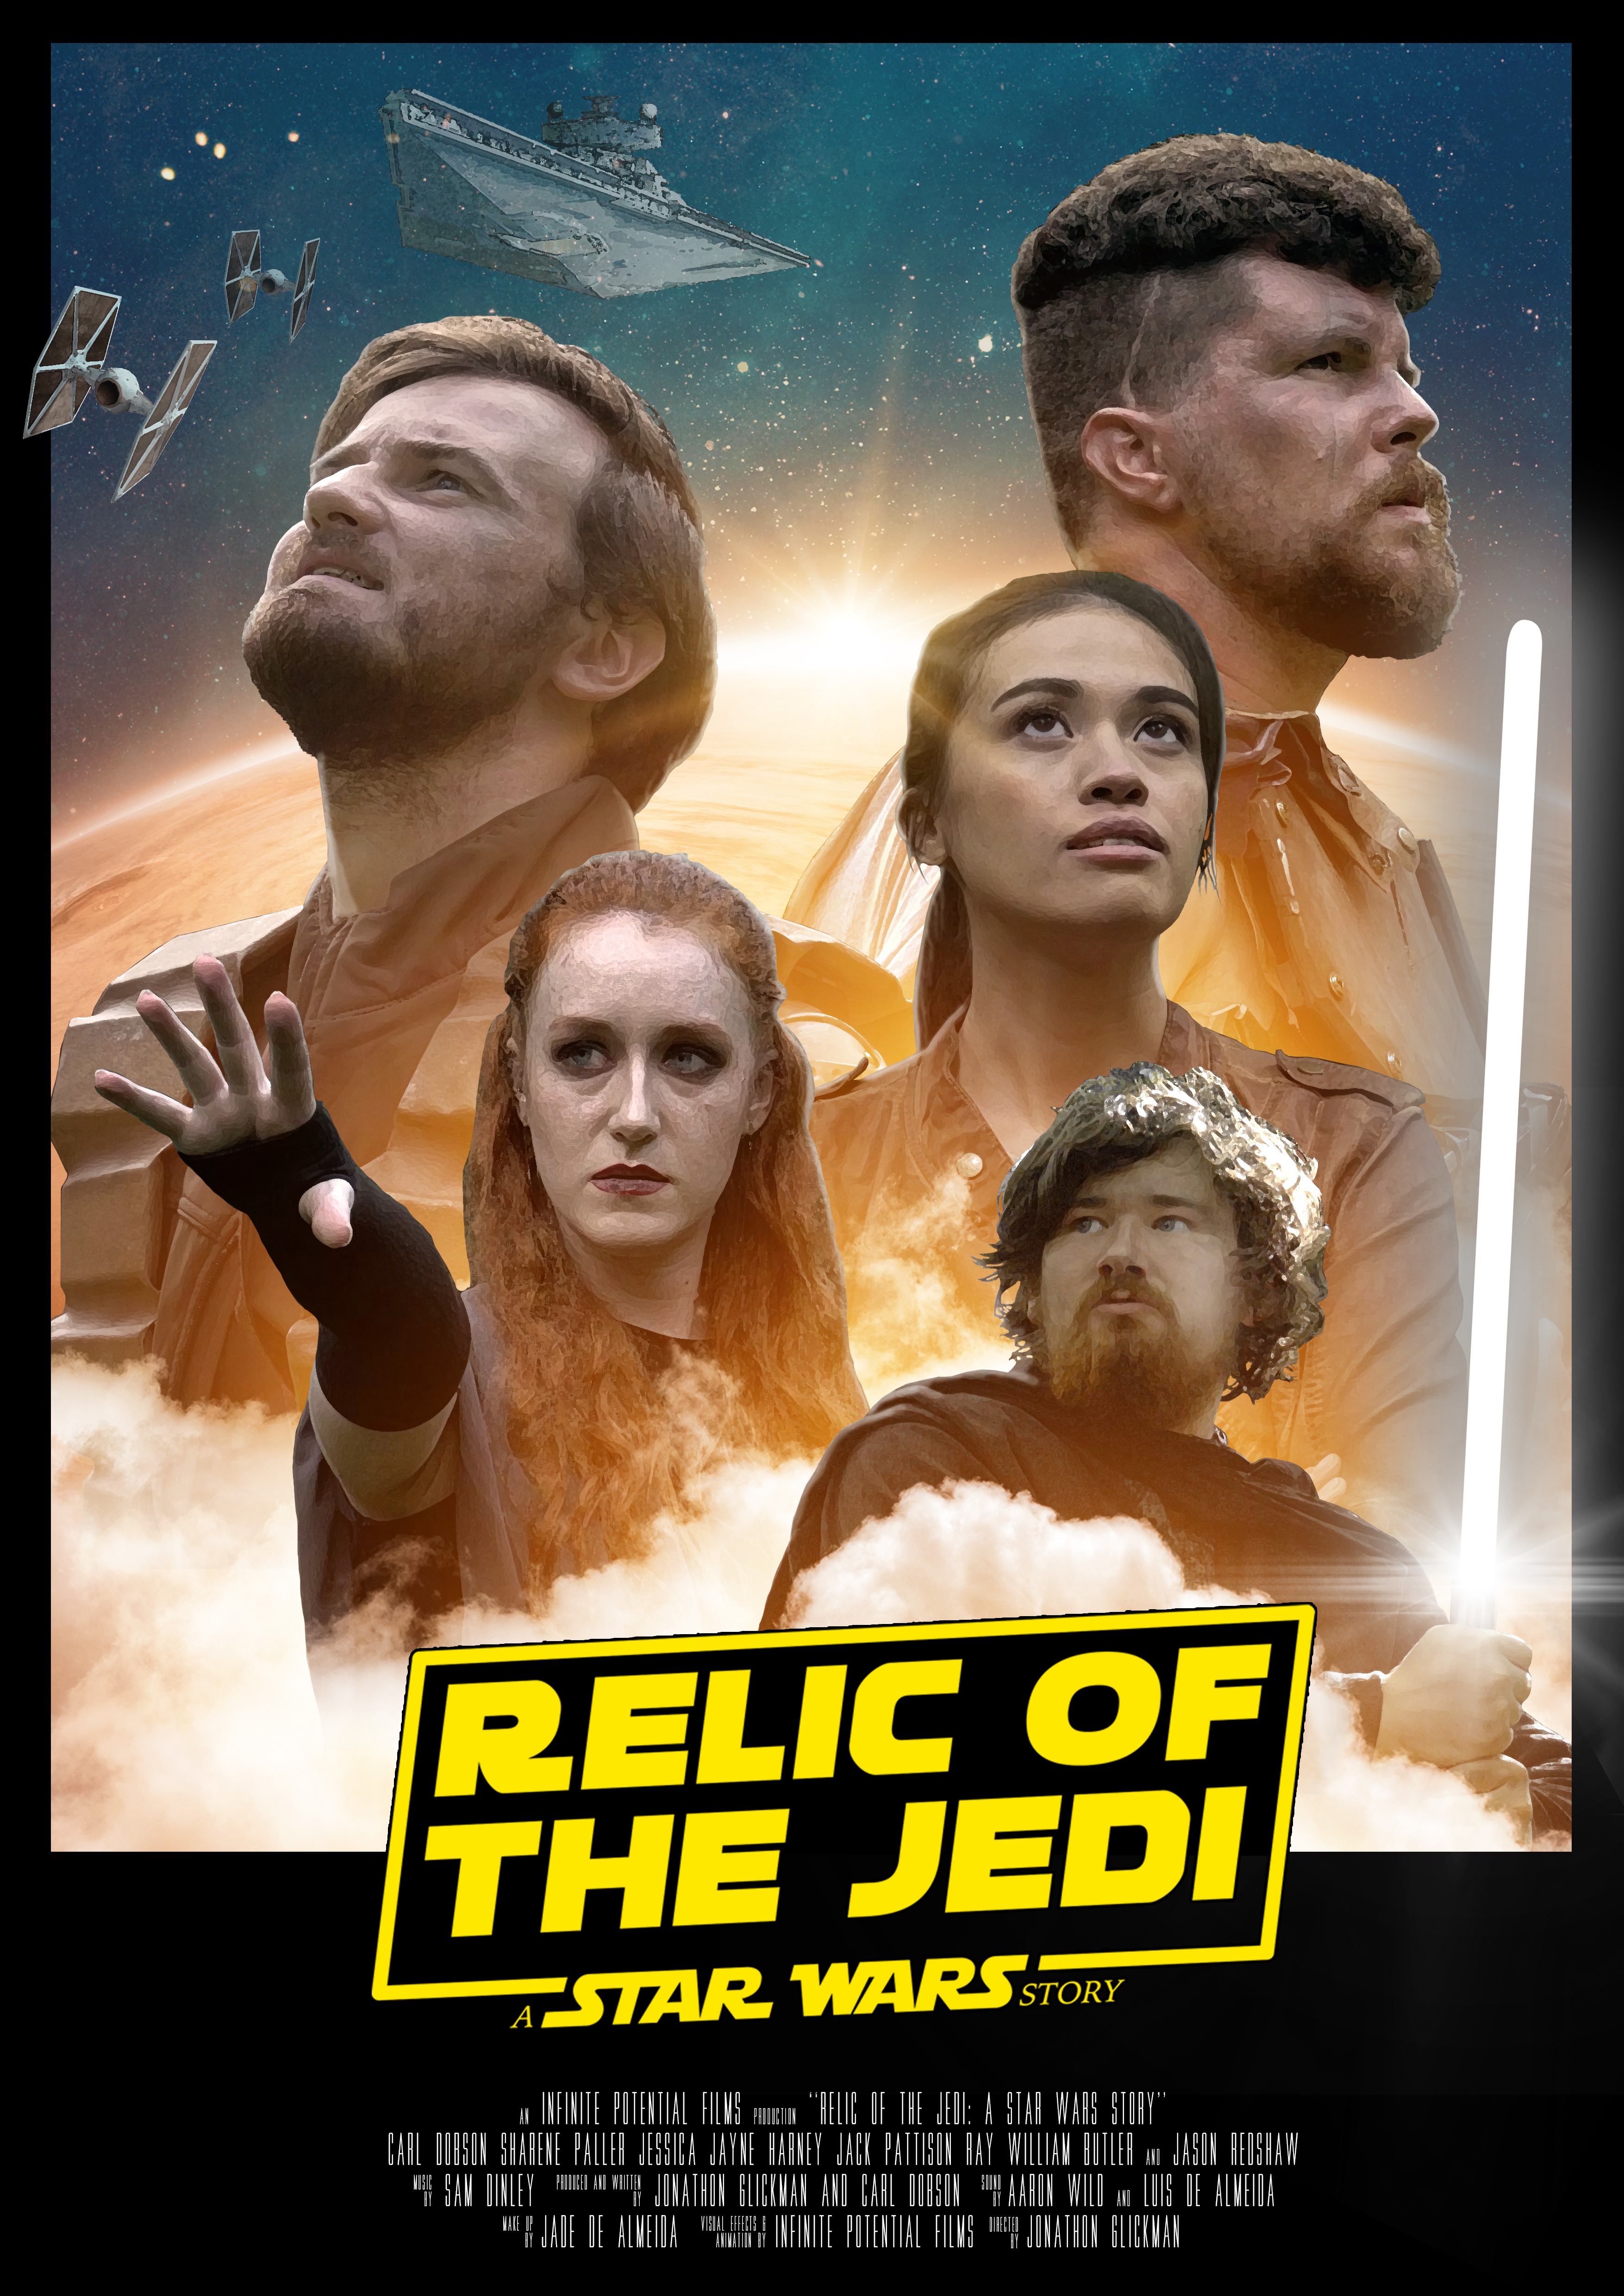 Relic of the Jedi: A Star Wars Story hd on soap2day